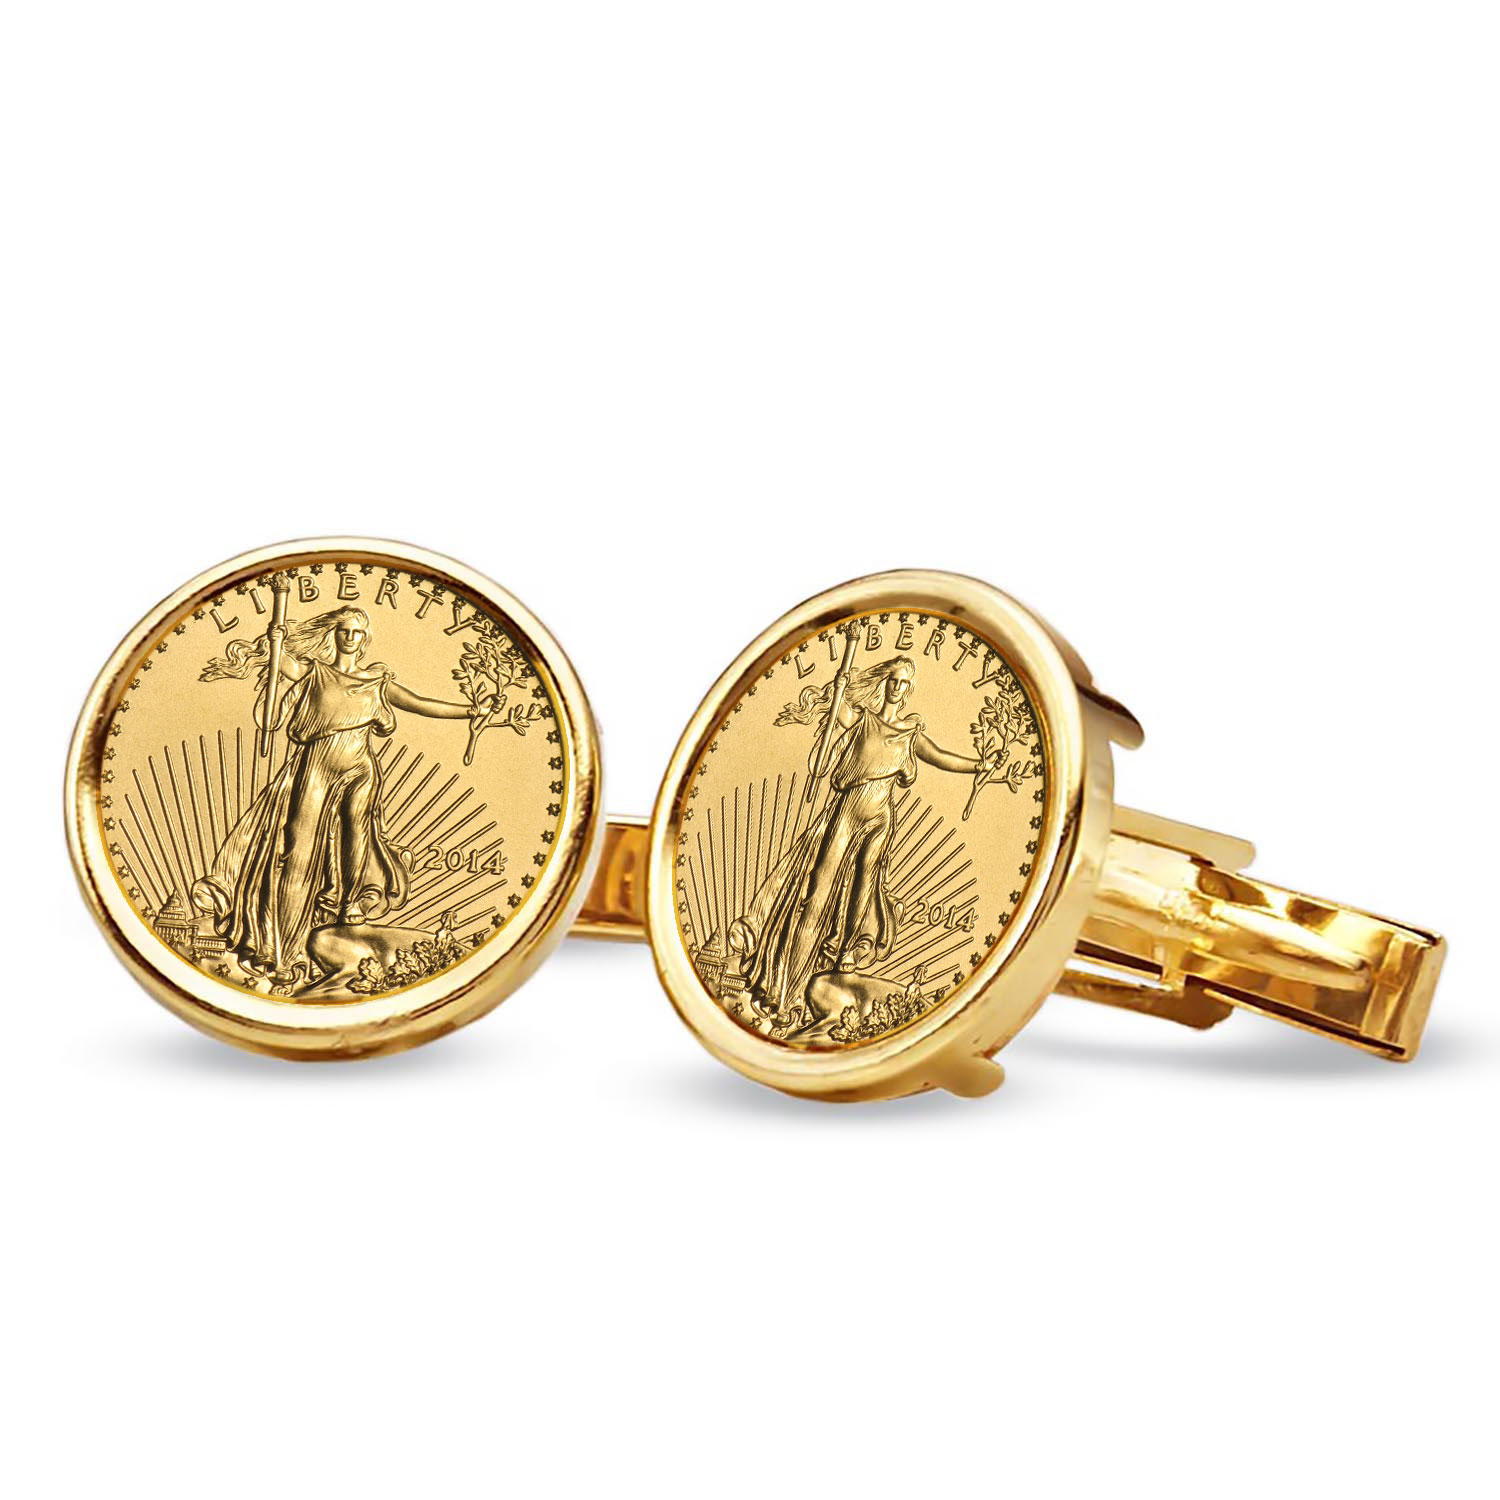 14k Gold Plain Polished Coin Cuff Links - 16.5 mm